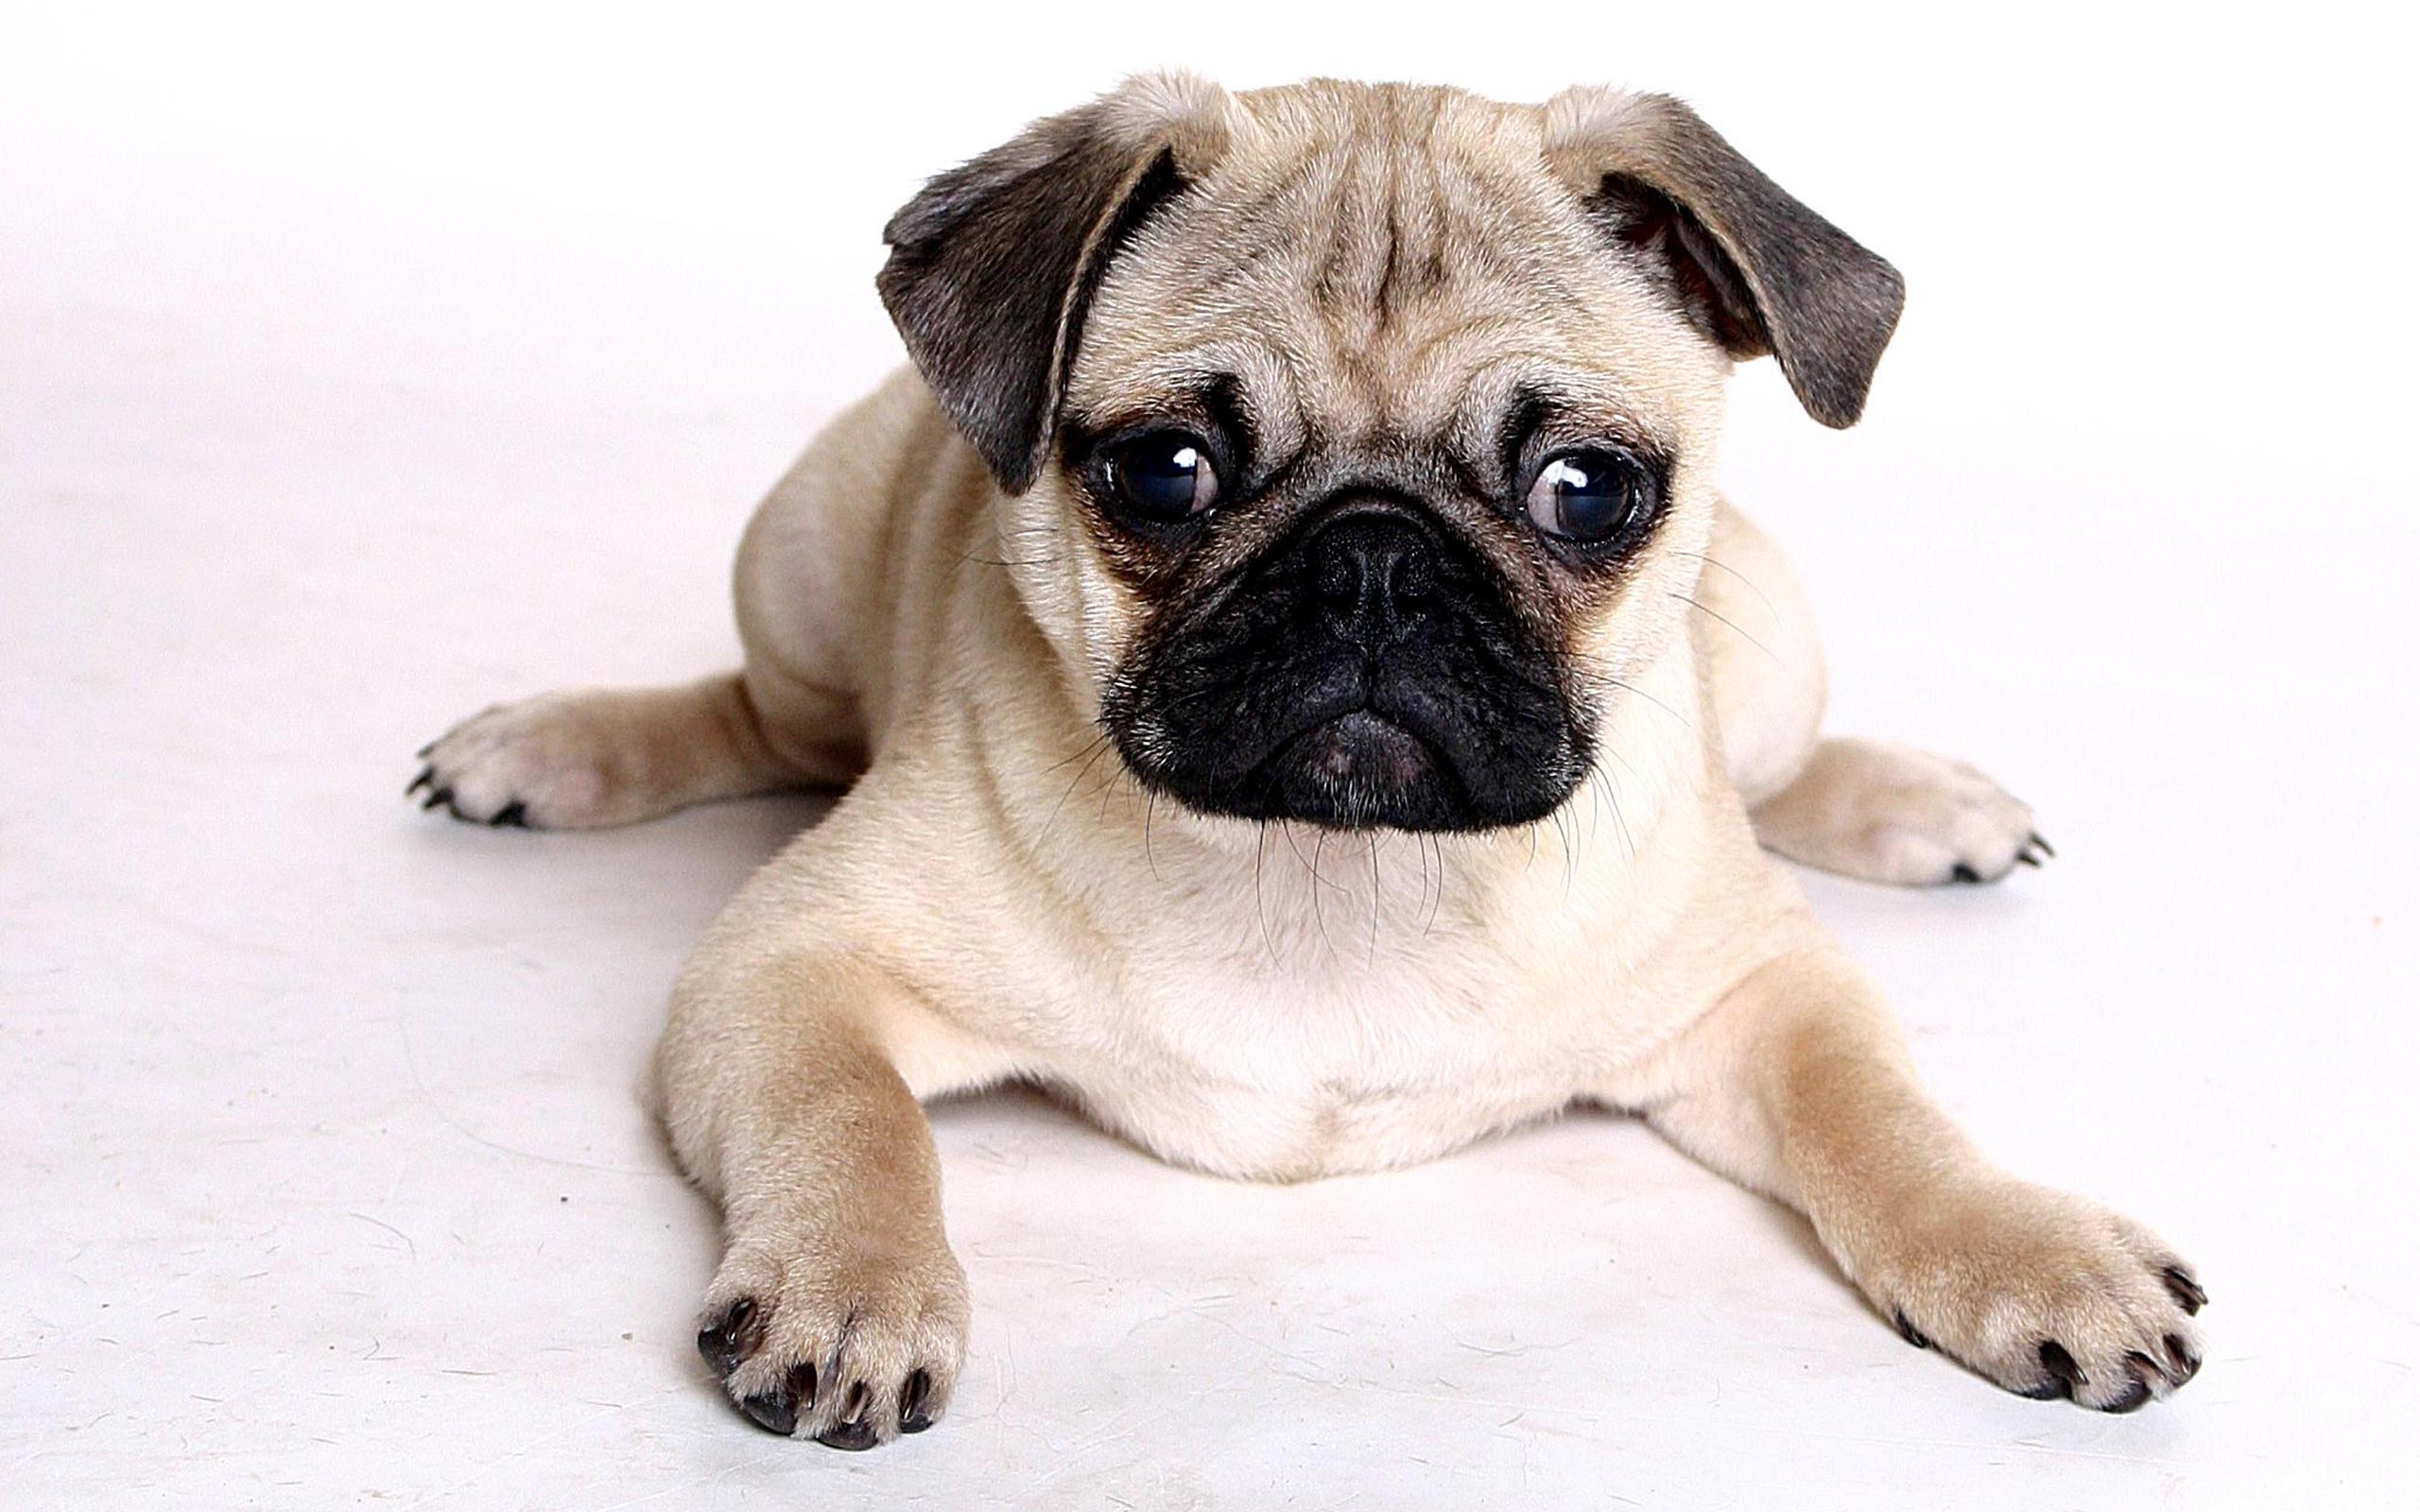 hd wallpapers new beautiful hd wallpapers of pug dog download 2560x1600